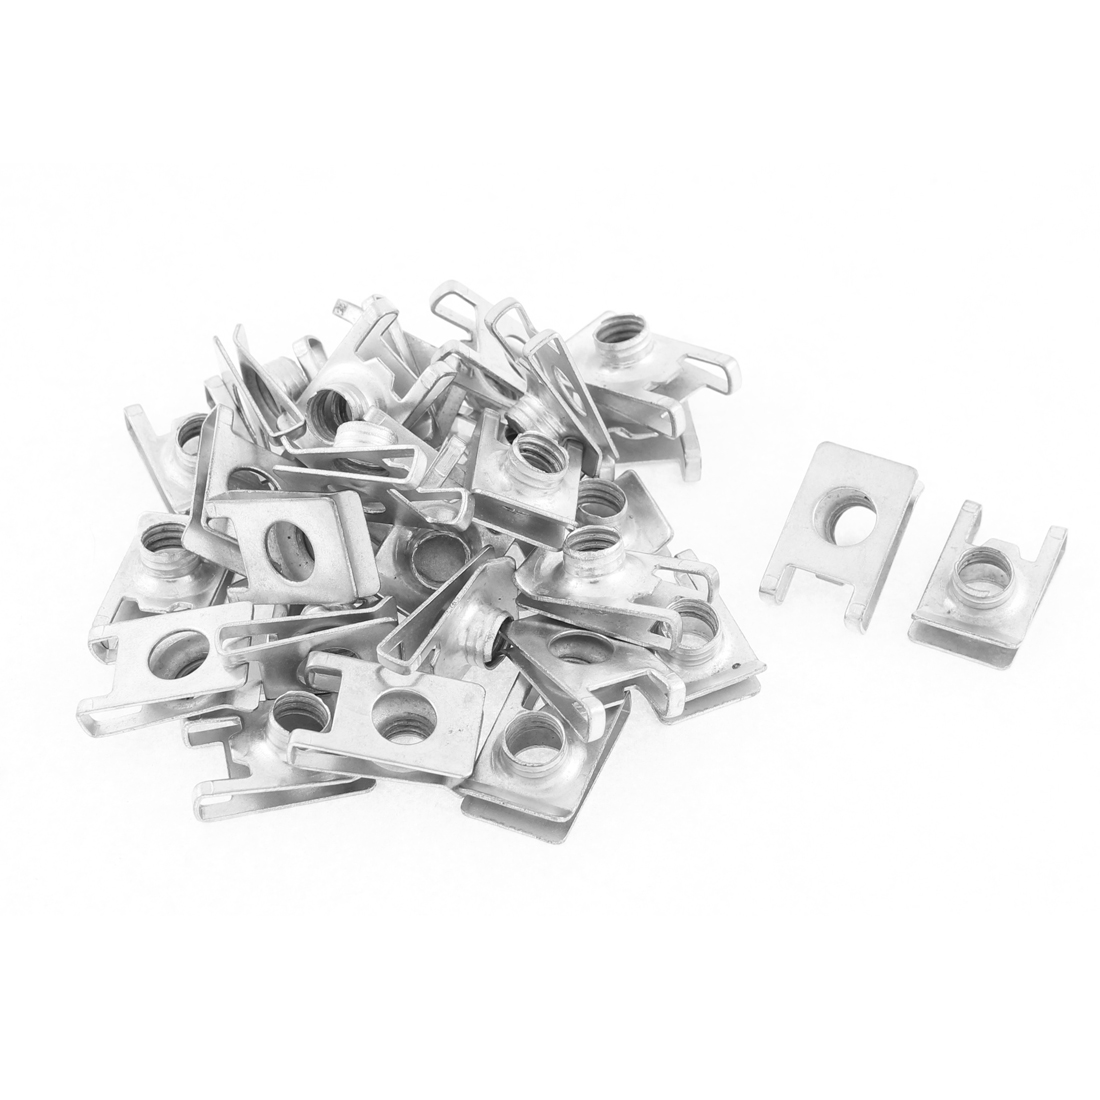 30Pcs Auto Car Dashboard Panel Fender Screw U Type Clips Speed Nuts